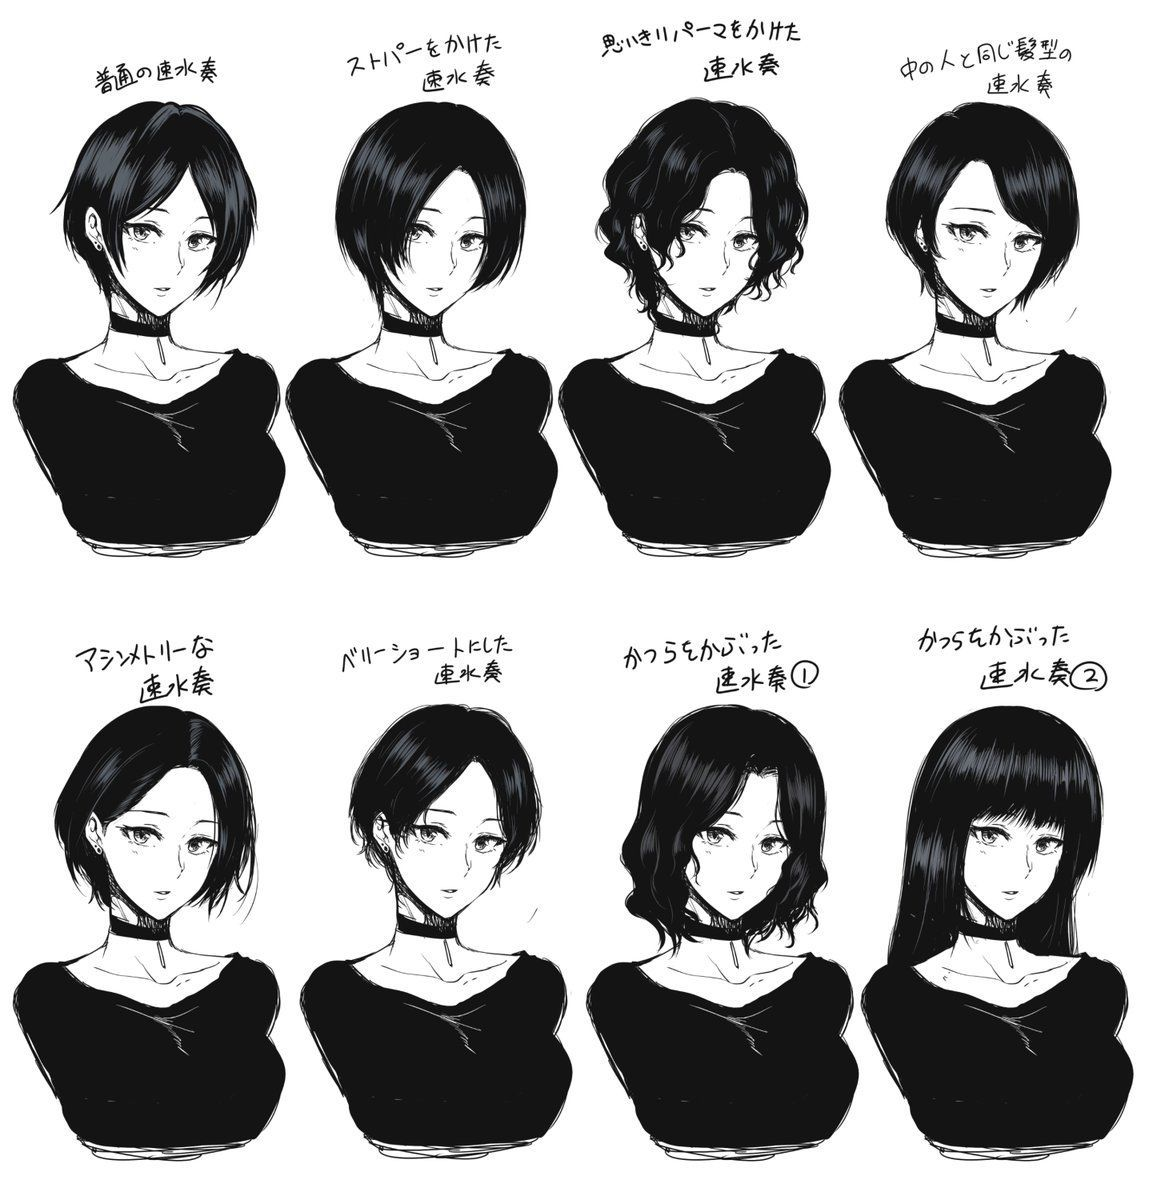 Drawing Hairstyles For Your Characters Drawing On Demand Manga Hair How To Draw Hair Anime Hair